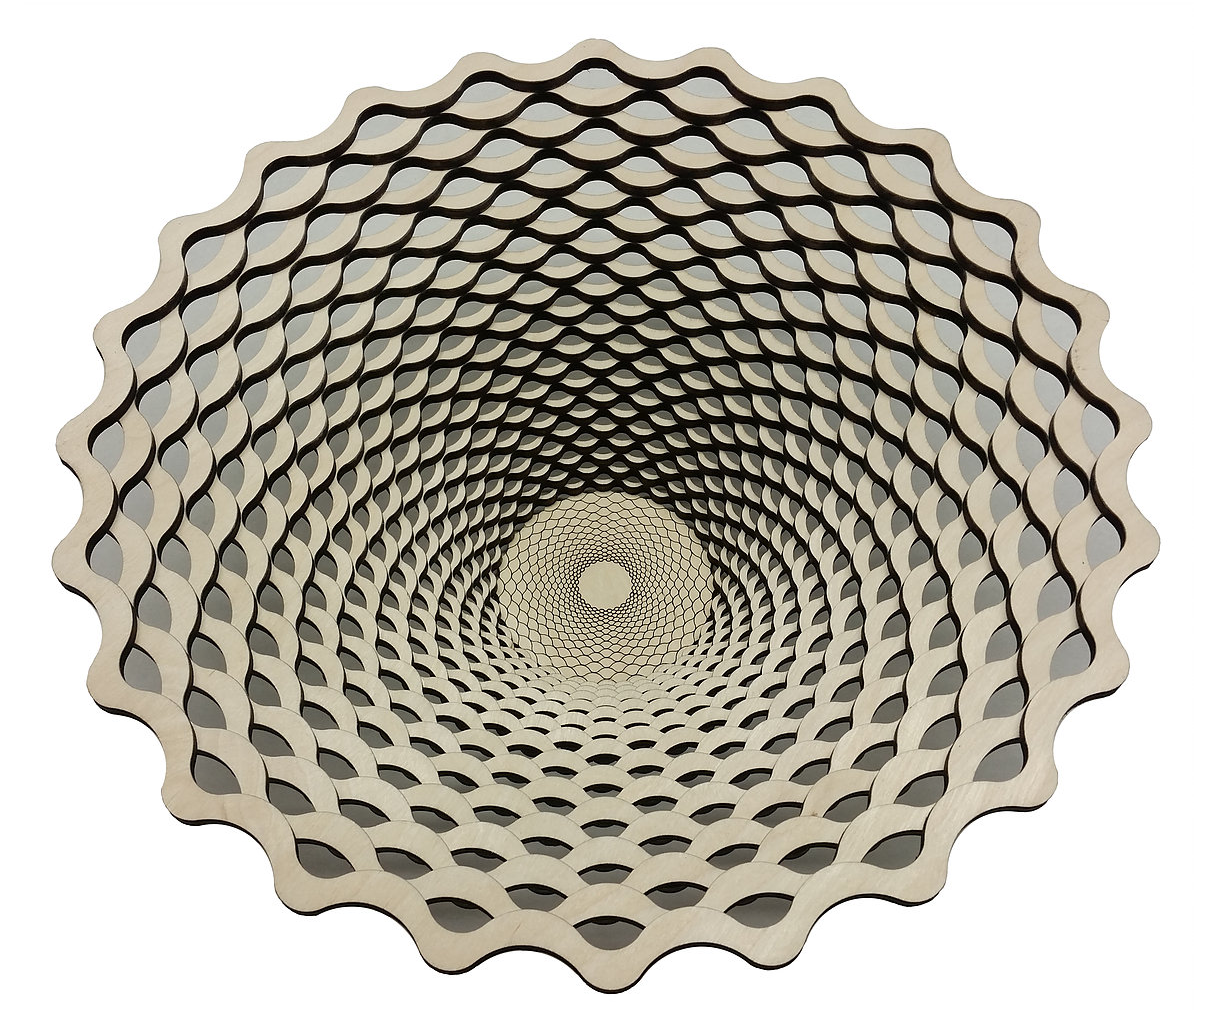 wood, bowl, design, math, fibonacci